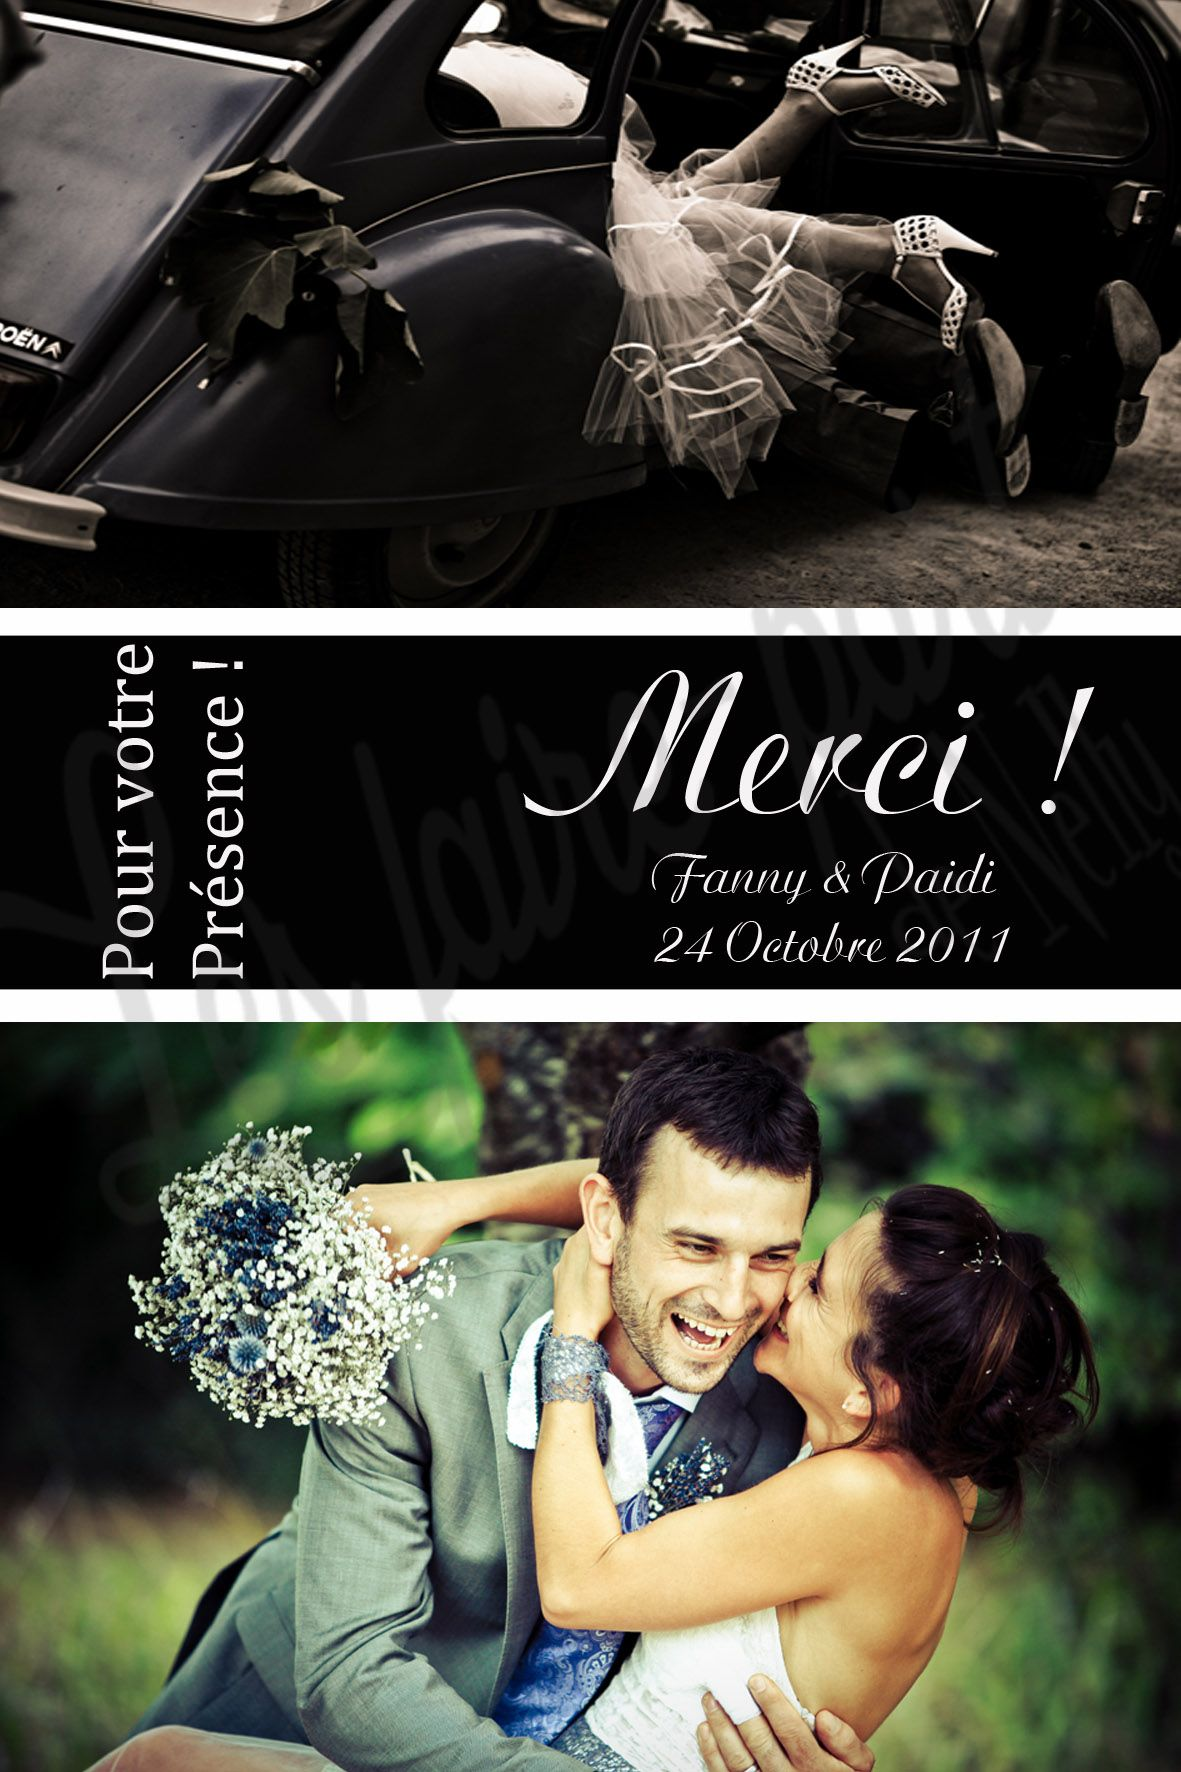 1000 images about carte remerciement mariage on pinterest virginia vineyard and mariage - Remerciement Mariage Photo